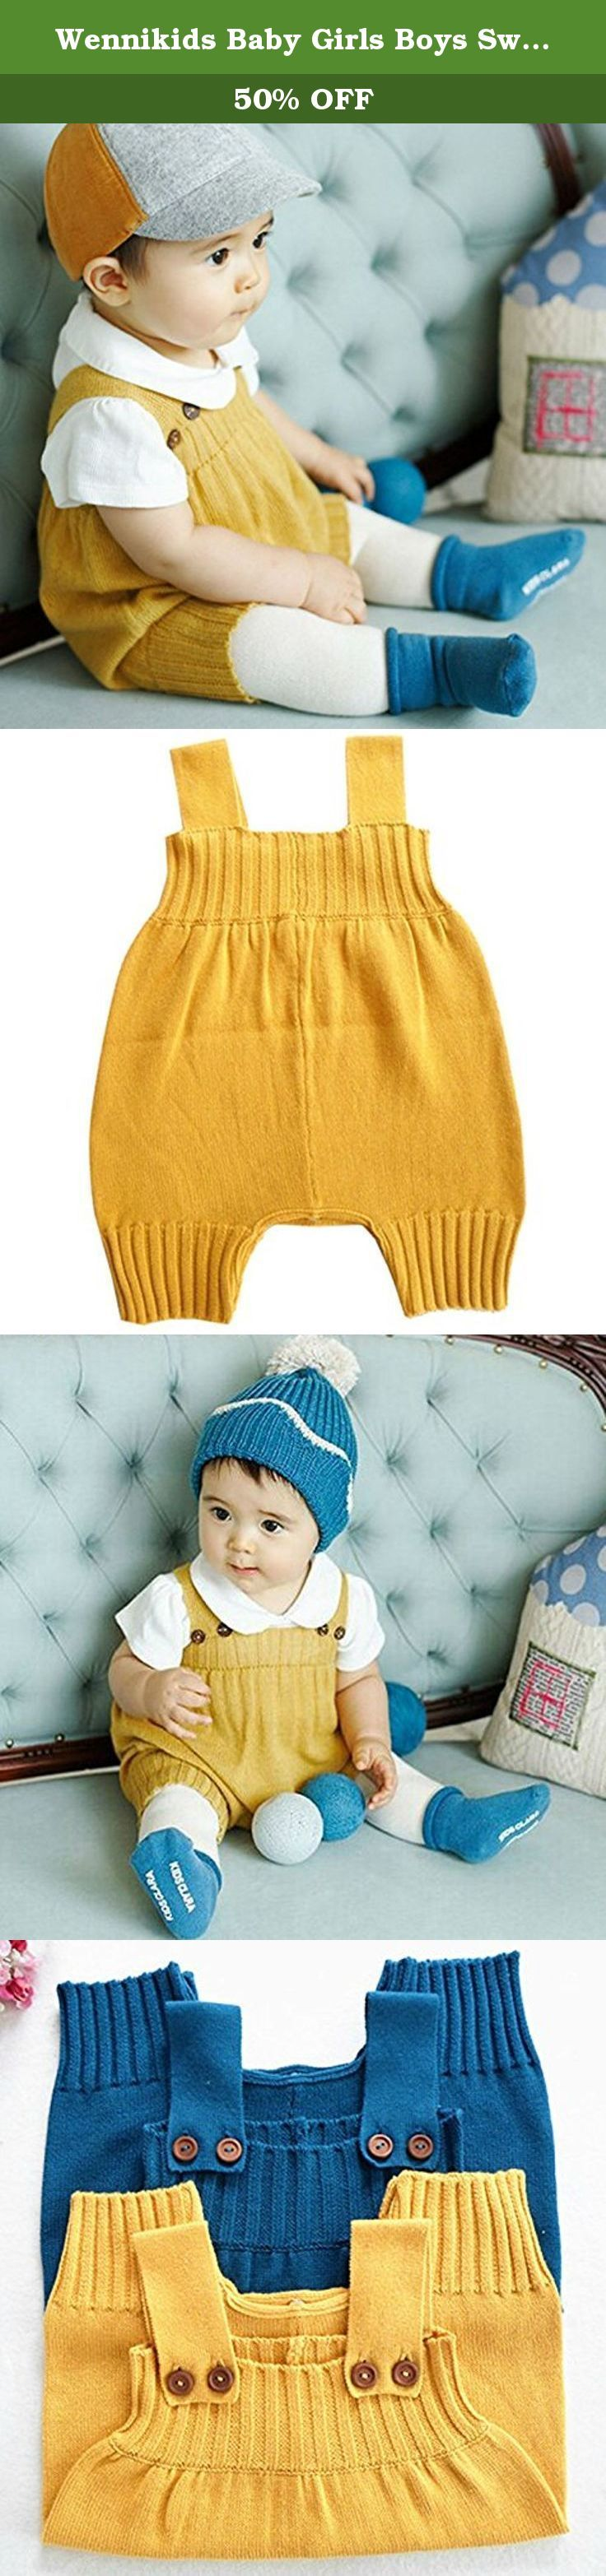 "Wennikids Baby Girls Boys Sweater Shoulder Strap Romper Large Yellow. Material:55% Cotton 2 Sizes suit for 6-24Months Baby Comfortable and soft. Make your baby so cute. Great for daily wear or photograph Have button on the straps,and have button on the bottom Size chart as follows: Size: M(6M); Length including the straps: 50cm/19.8"";Chest:63cm Age:6-12month Size: L(12M); Length including the straps: 52cm/ 20.5"";Chest:66cm Age:12-24month If you are satisfied with our products, Hope you…"